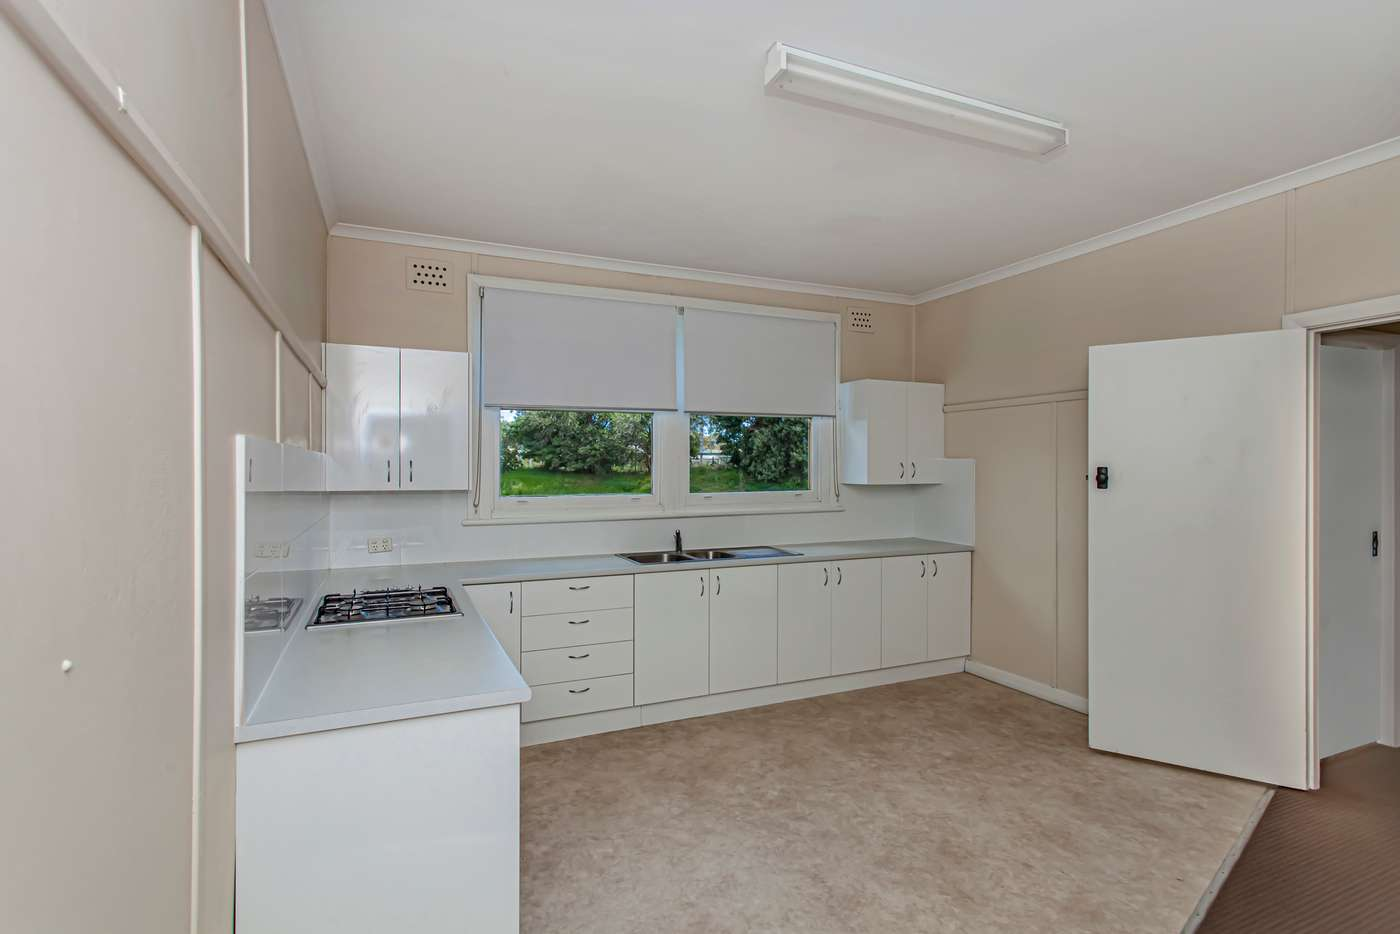 Fifth view of Homely house listing, 5 Court Street, Adamstown NSW 2289